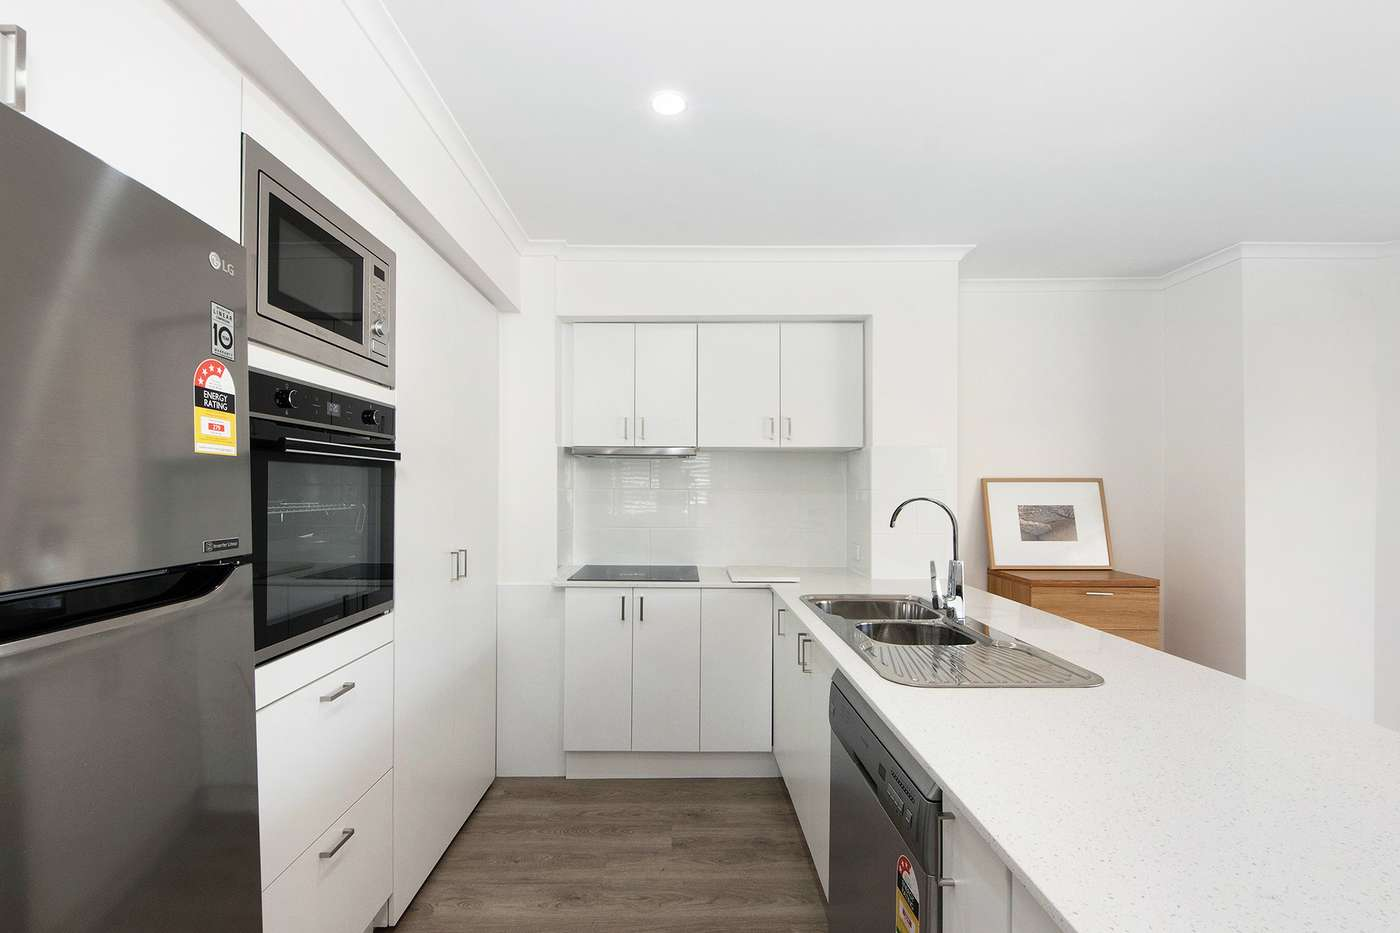 Main view of Homely apartment listing, 82/10 Alexandra Avenue, Mermaid Beach, QLD 4218